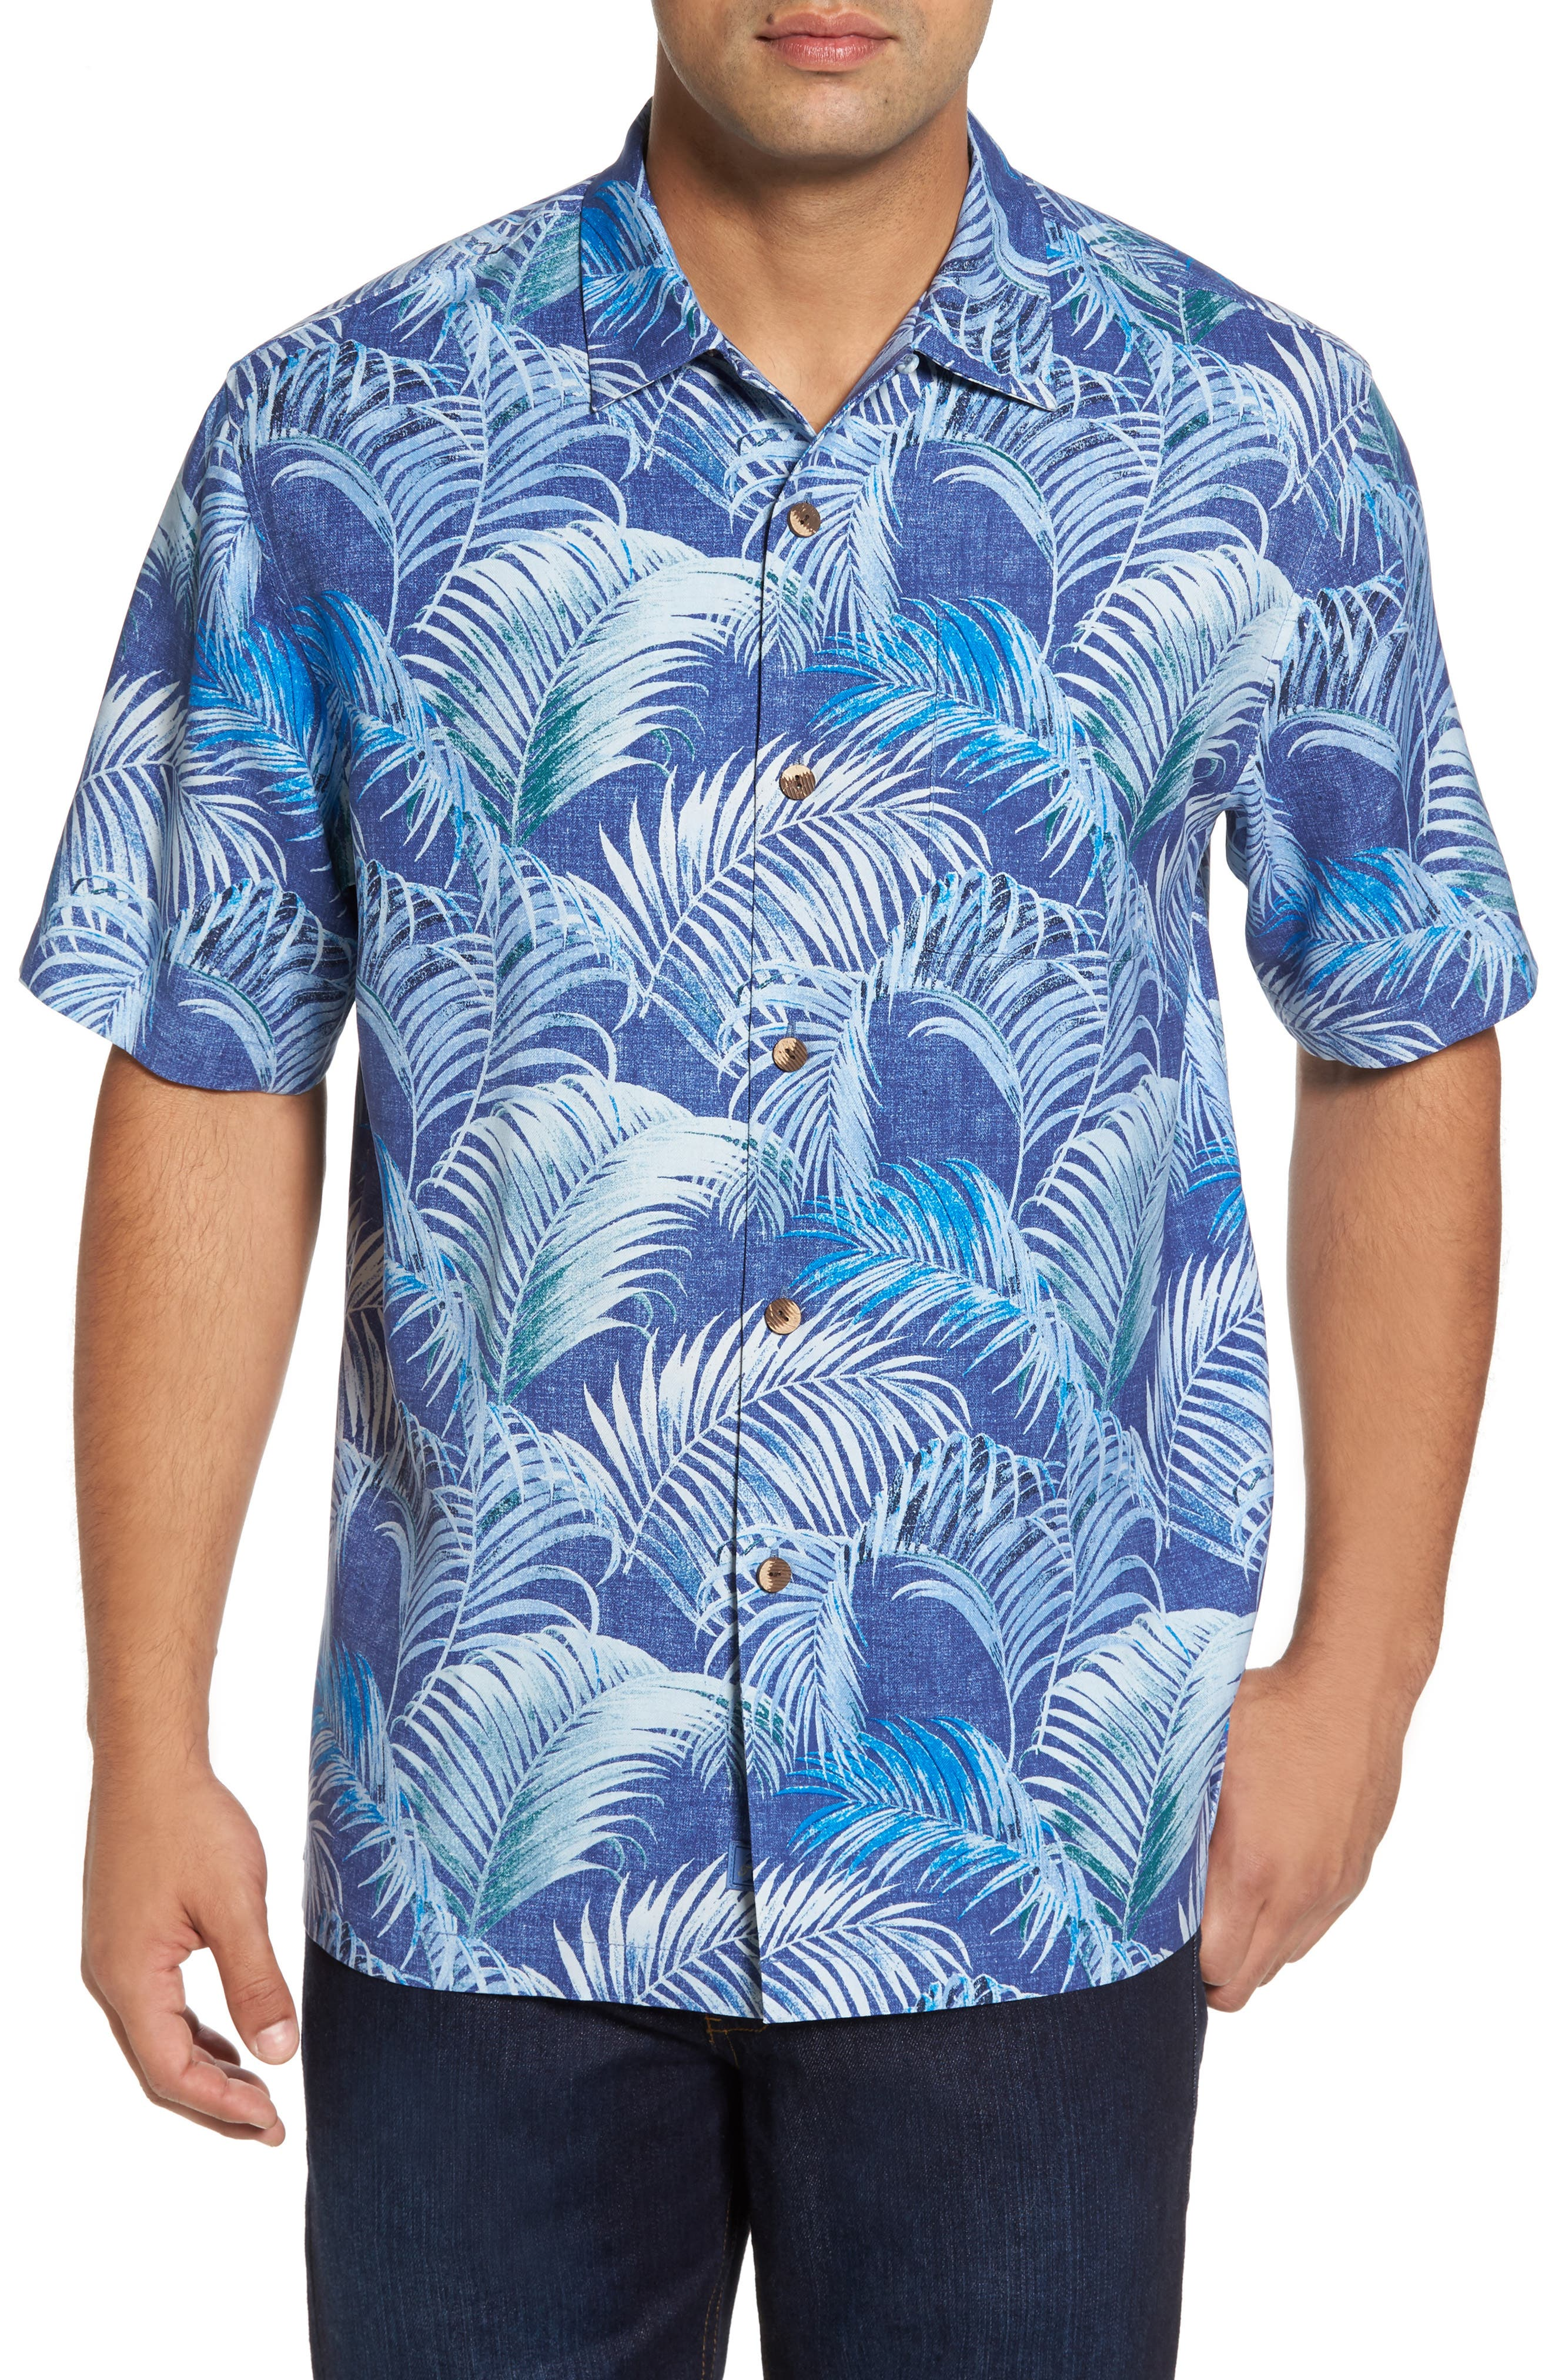 Garden of Hope and Courage Silk Camp Shirt,                             Main thumbnail 1, color,                             400